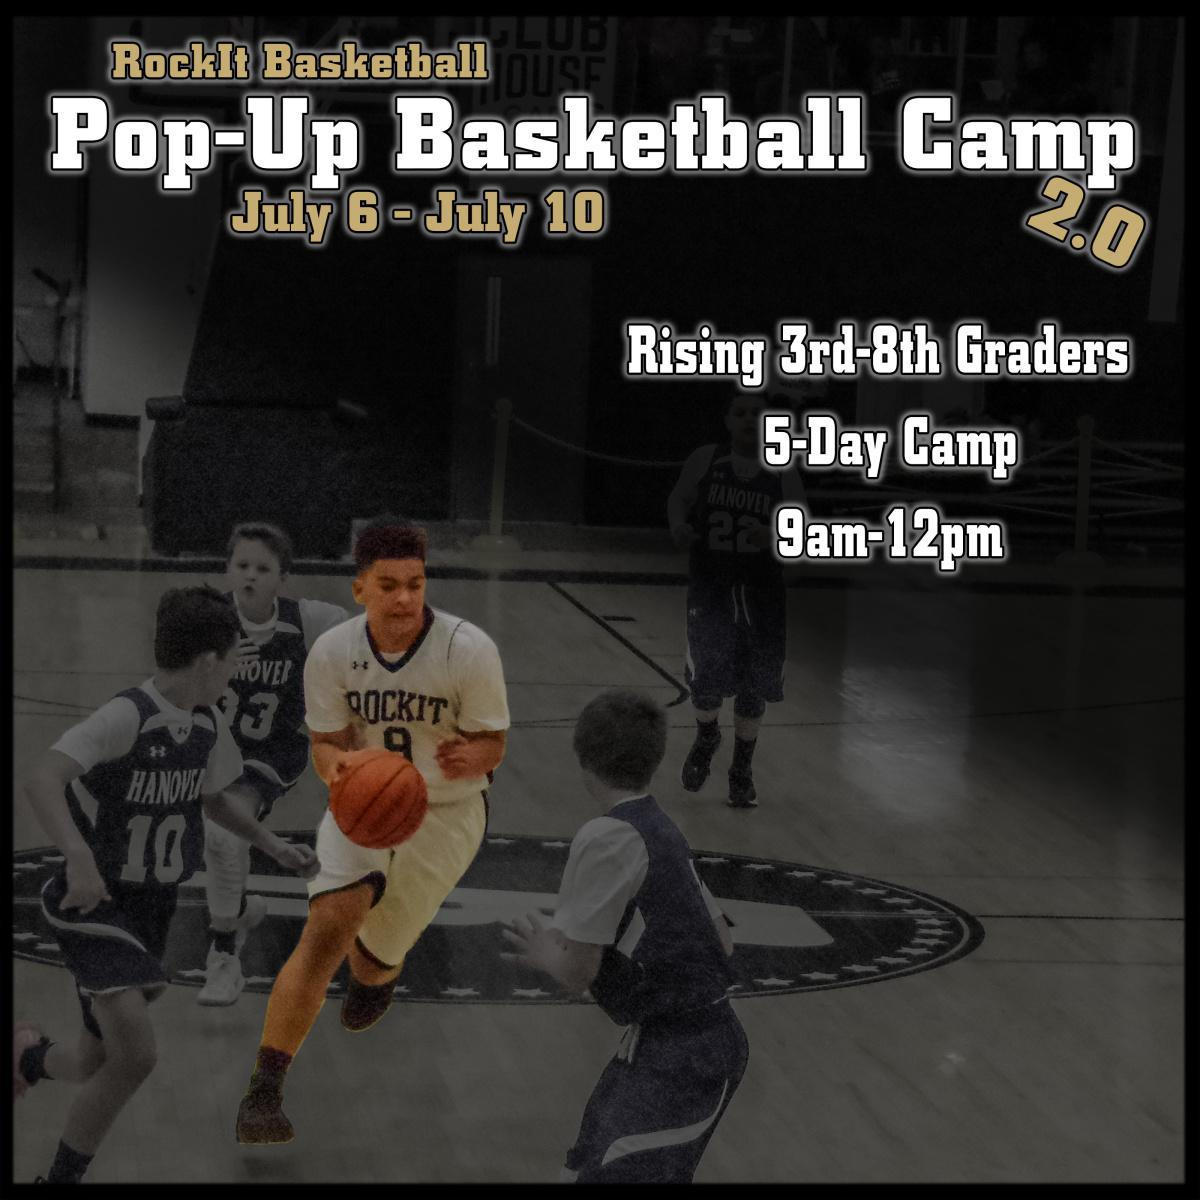 Pop-Up Basketball Camp 2.0